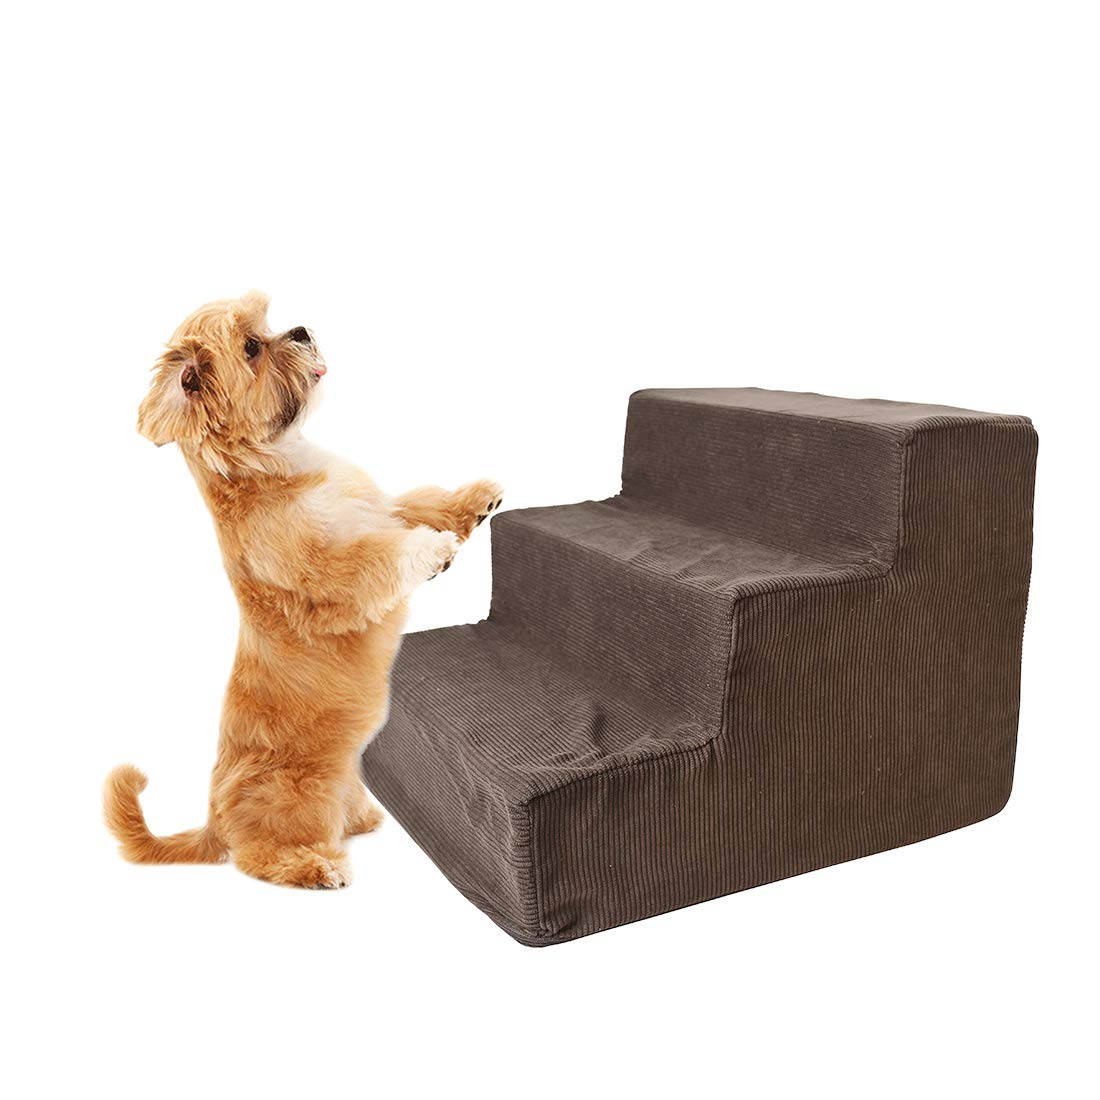 Enerhu Pet Steps with Washable Cover Soft Foam Dog/Cat Strairs Non-Slip Bottom Puppy Ladders